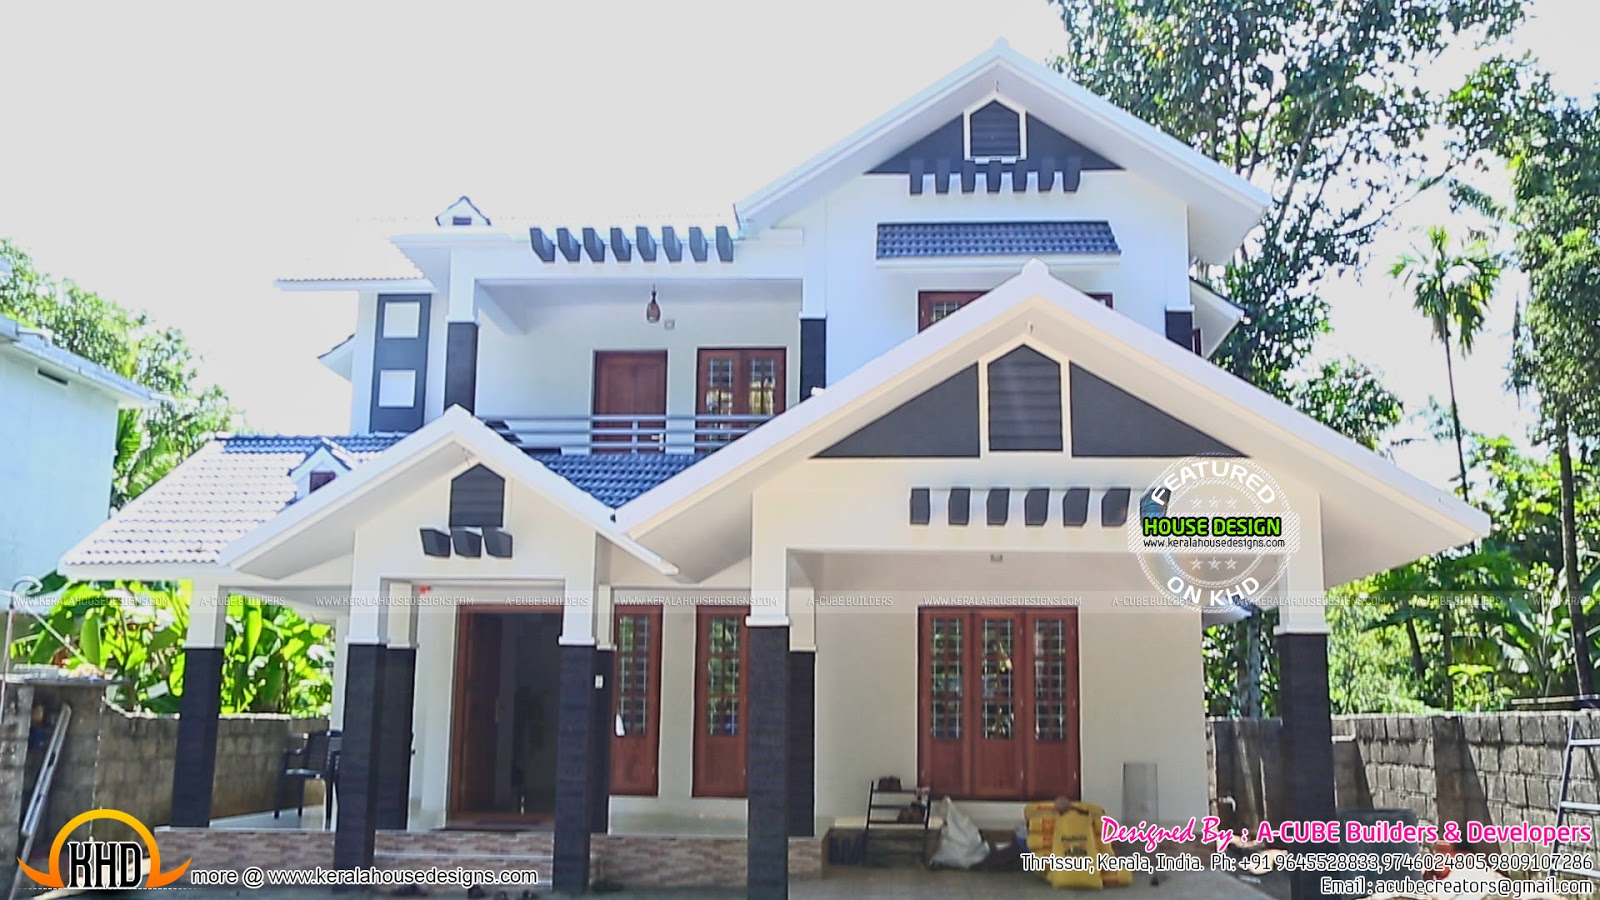 New house plans for 2016 starts here kerala home design for New home blueprints photos